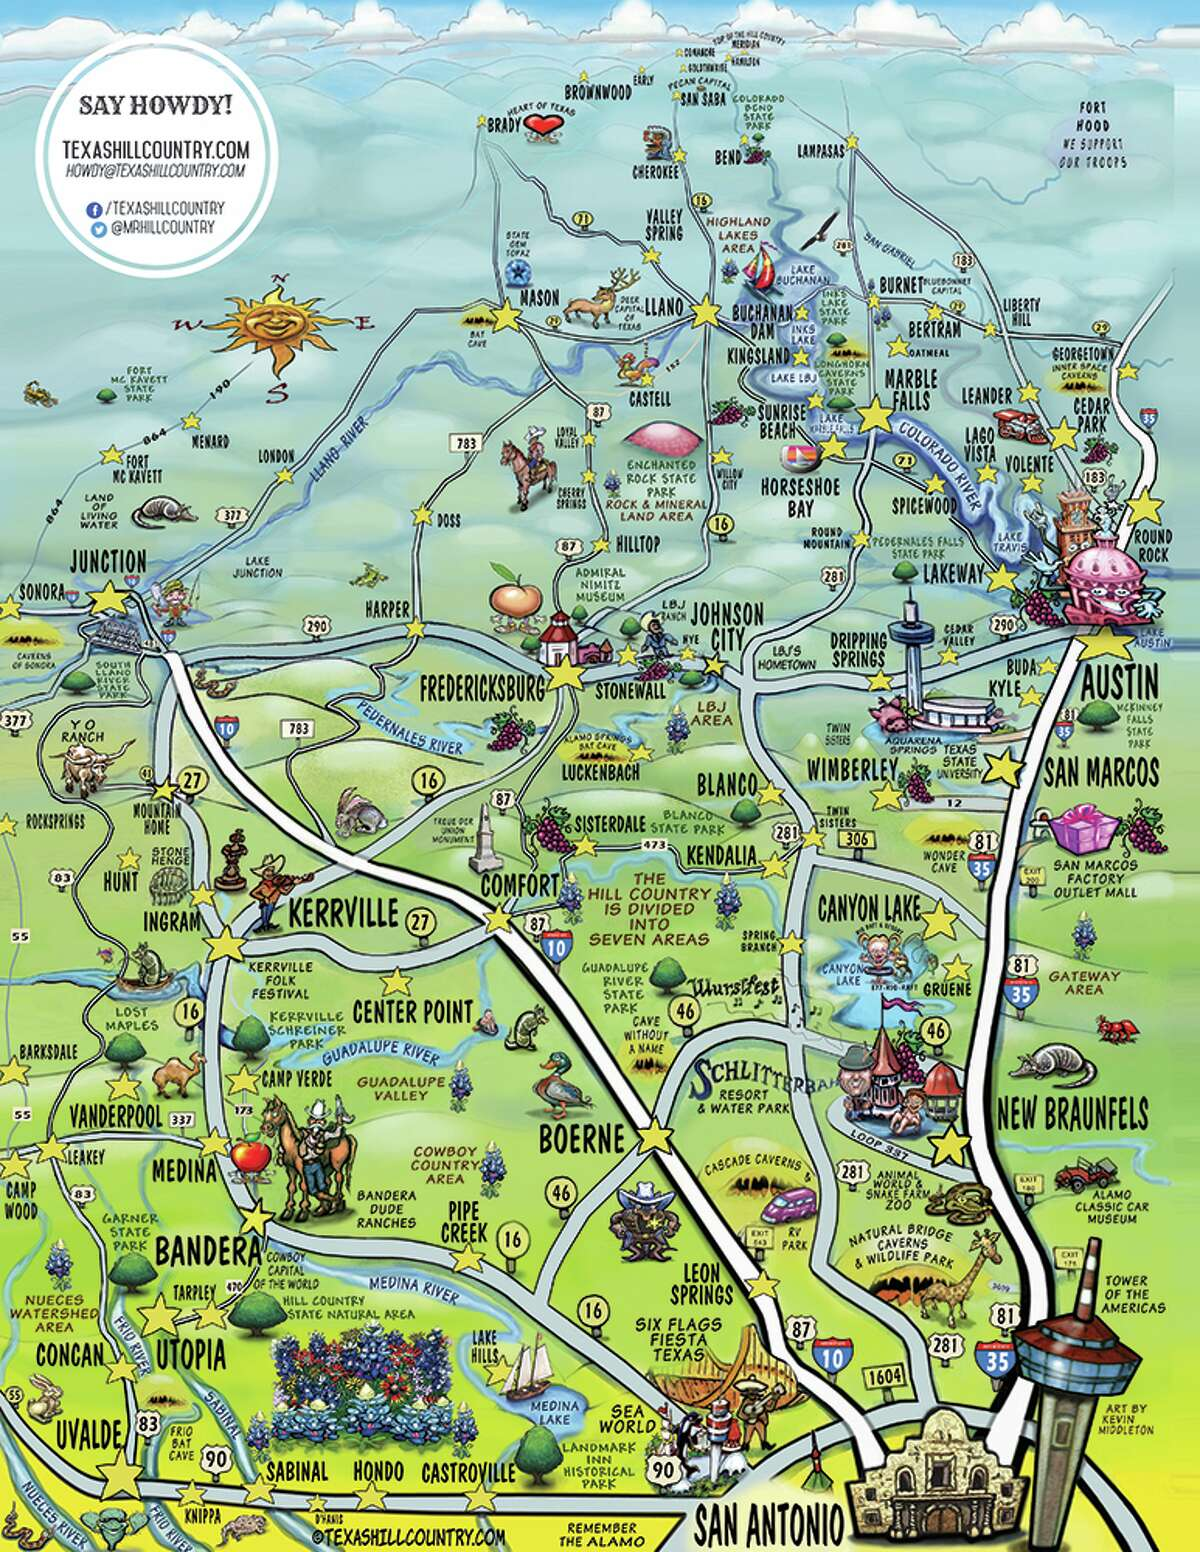 This cartoon-style map from TexasHillCountry.com captures all the beauty and character of this popular Texas travel destination. Helotes was added to the map in August 2015.